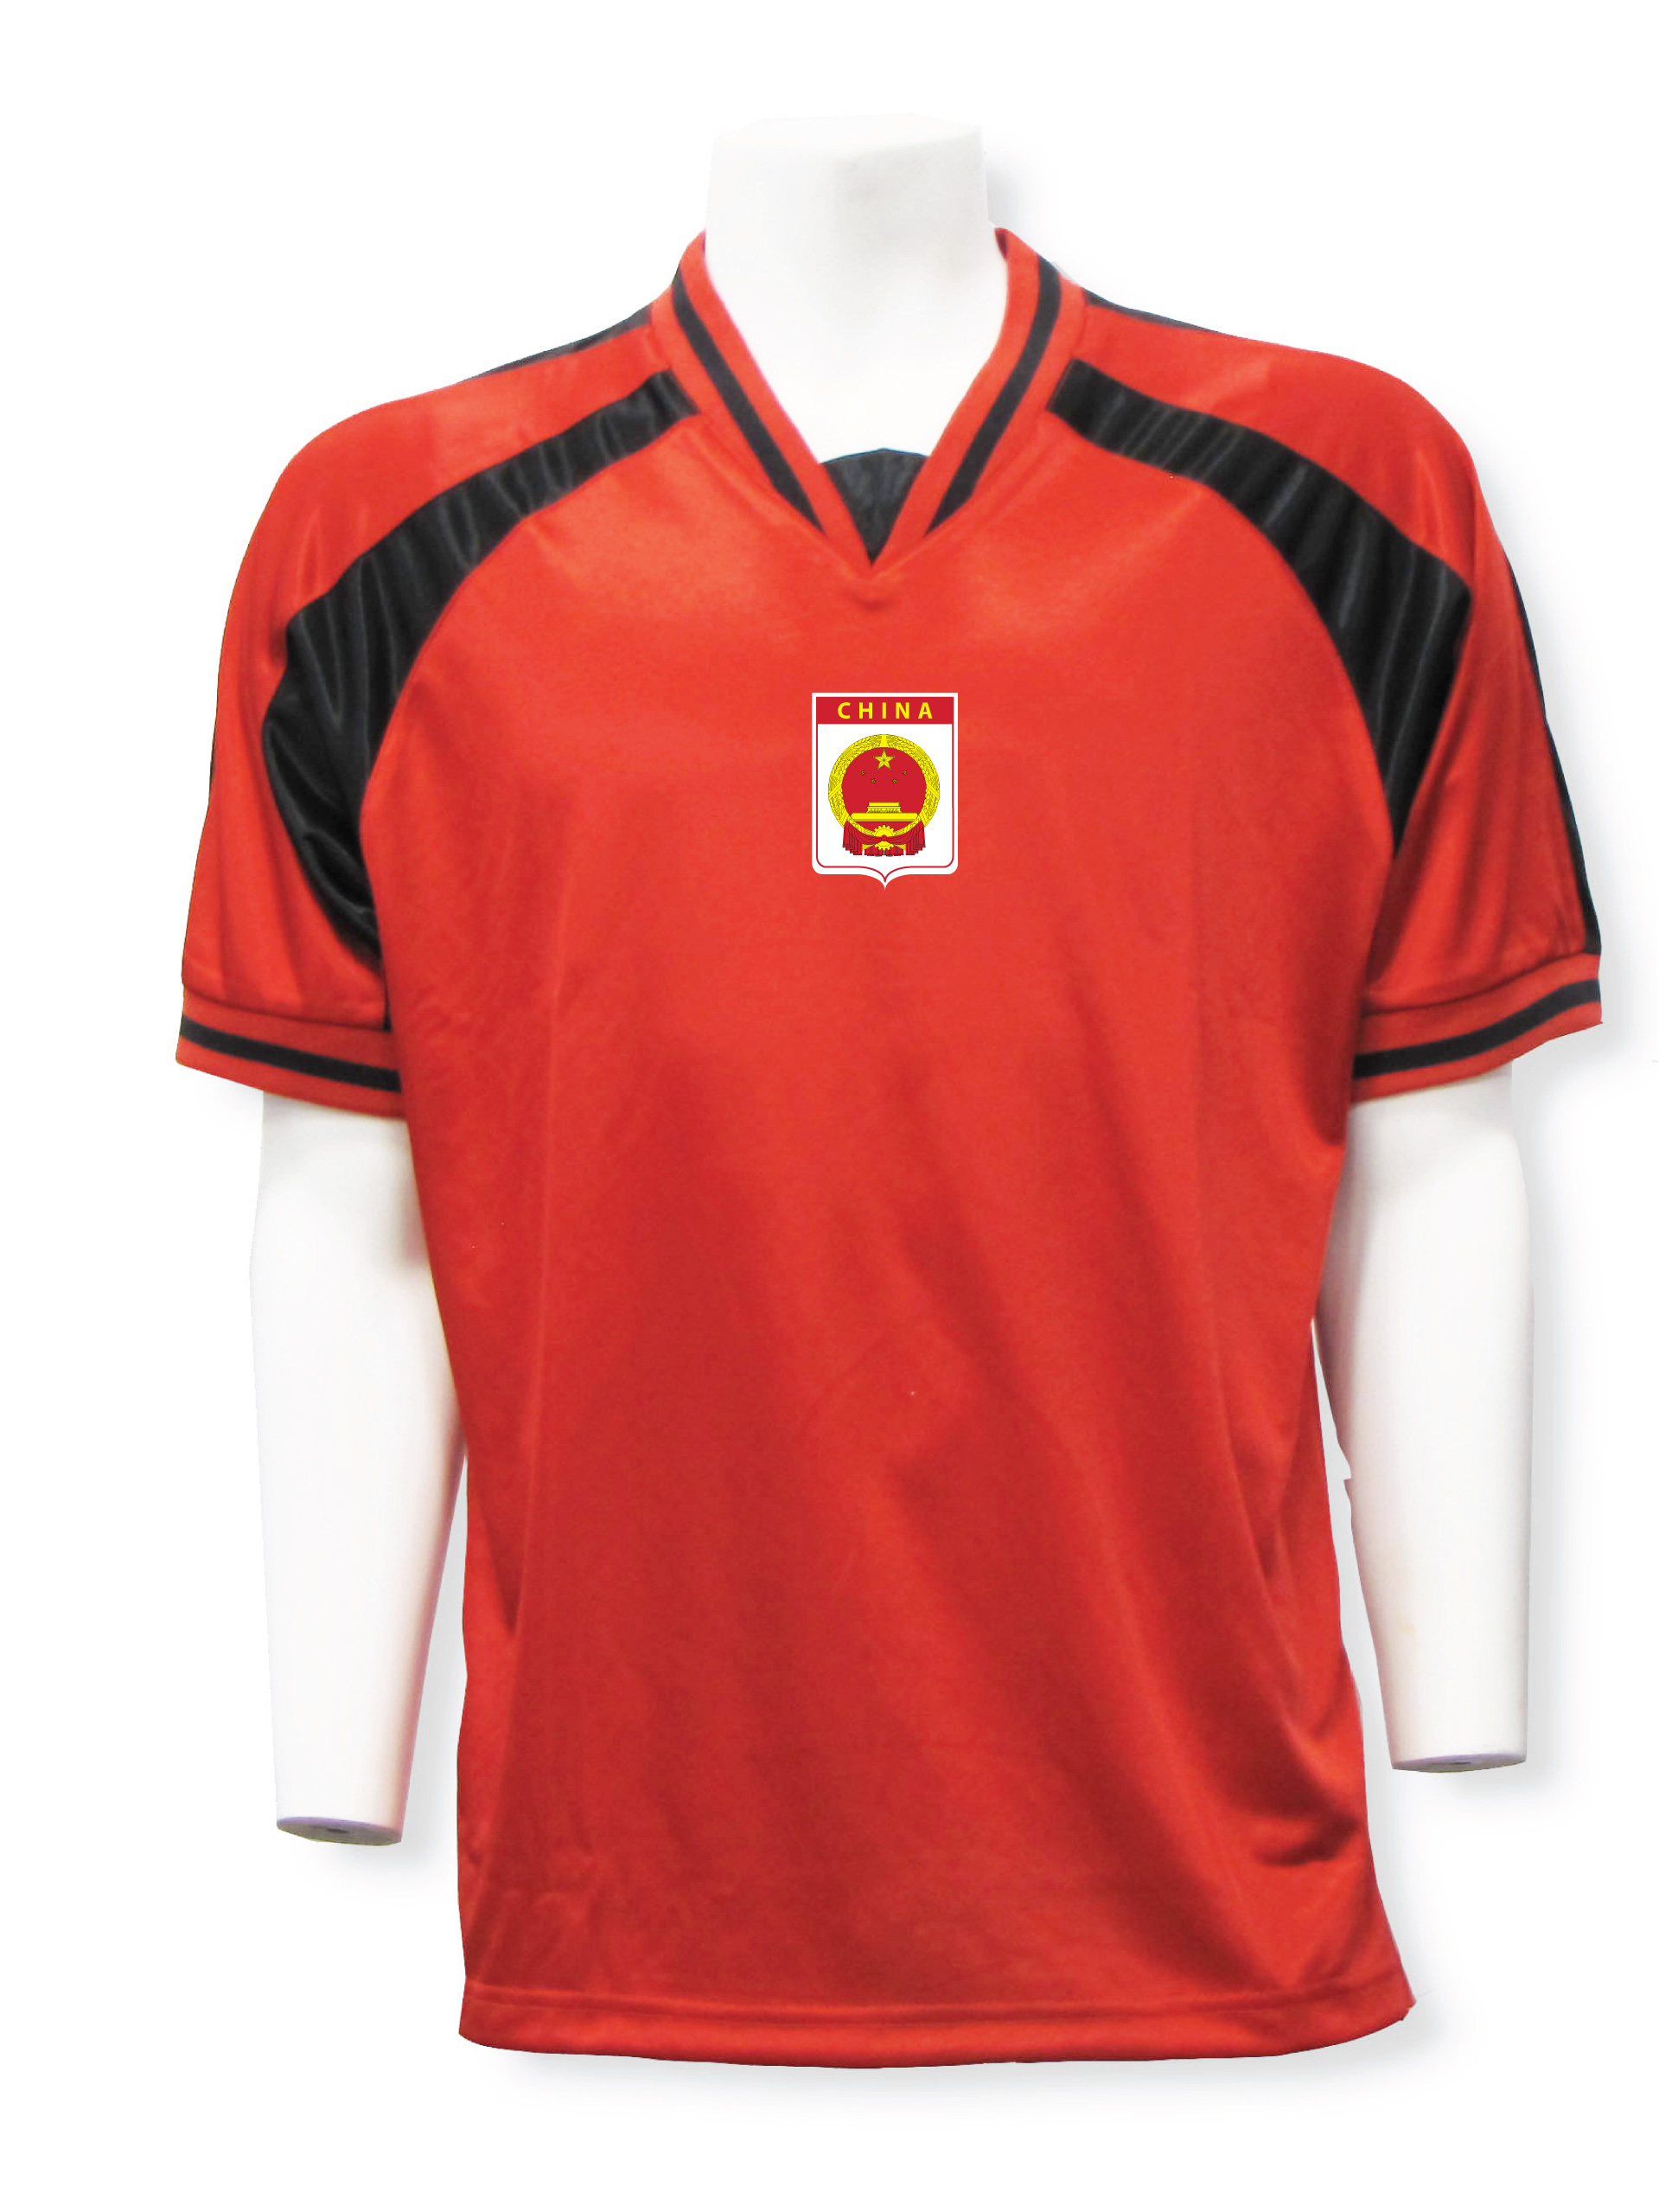 China soccer jersey in red/black Spitfire